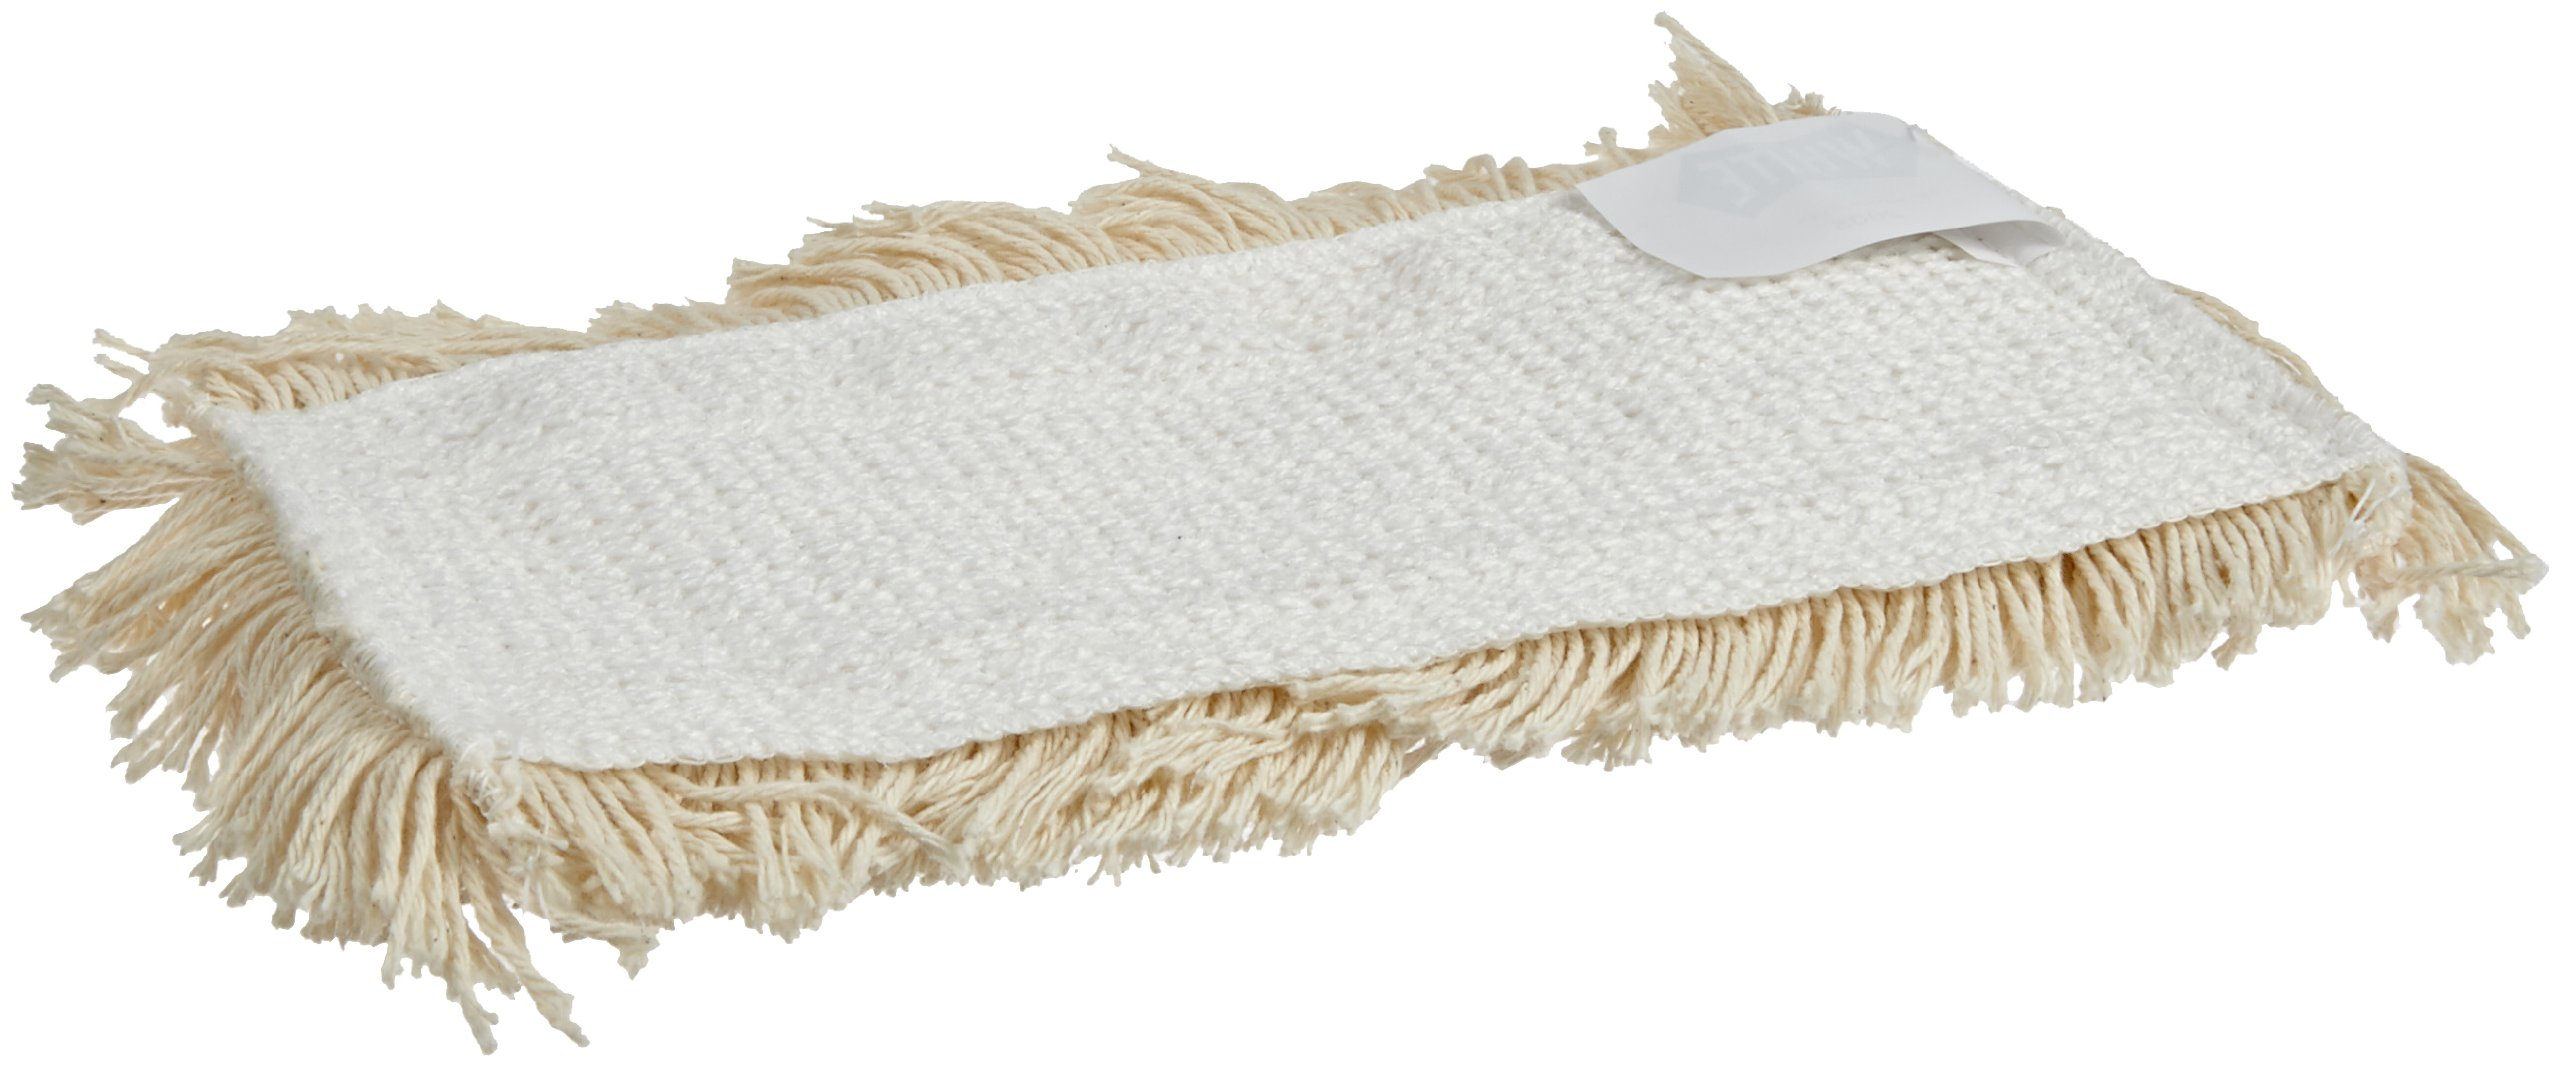 Impact 2005 Cotton Wall Washer Pad, 10'' Length x 5'' Width, Natural (Case of 12)